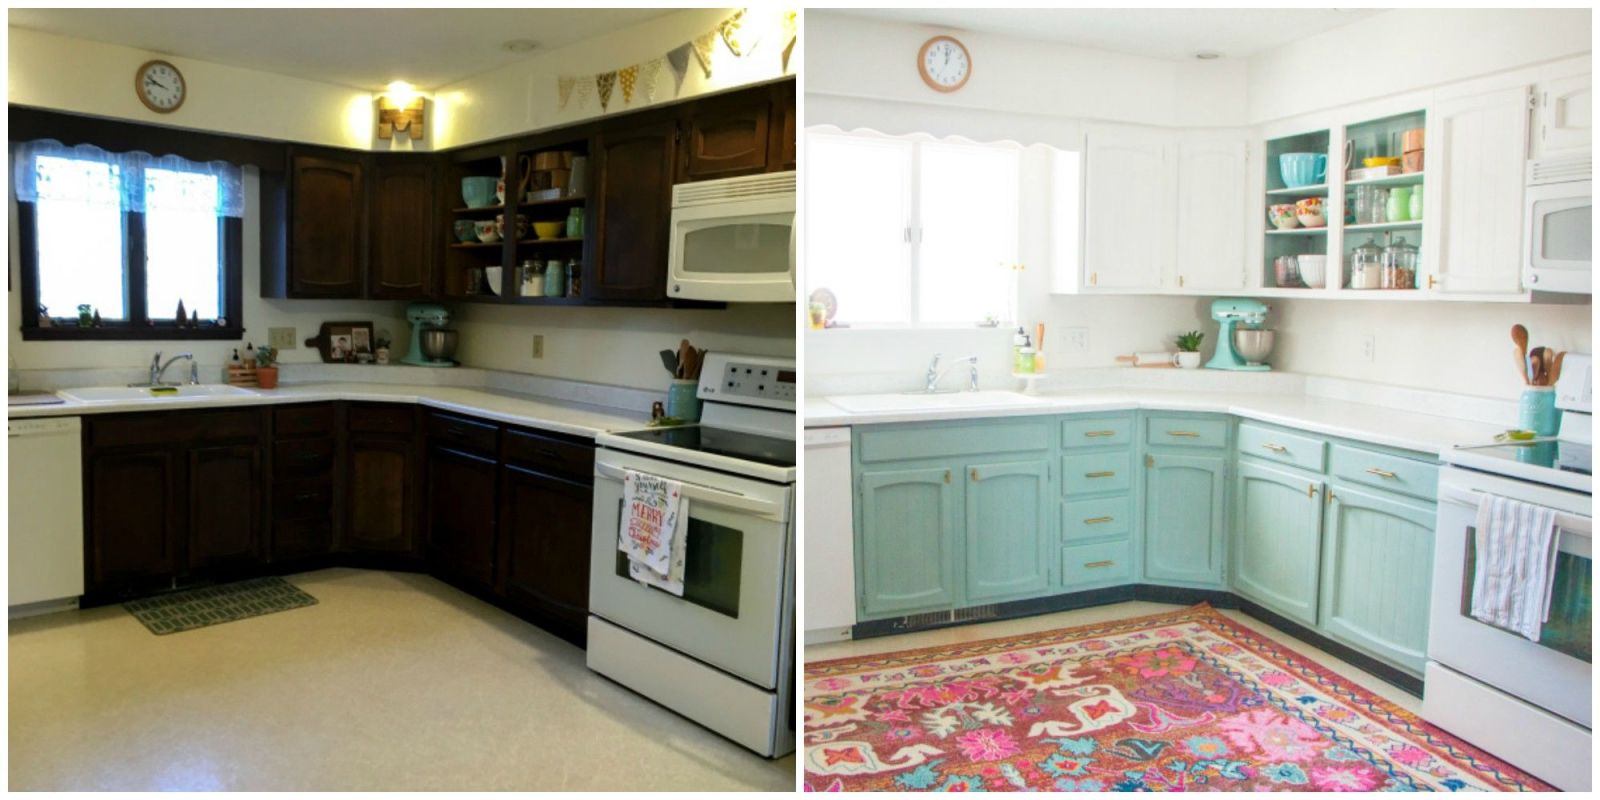 home makeovers - Home Renovation Designs